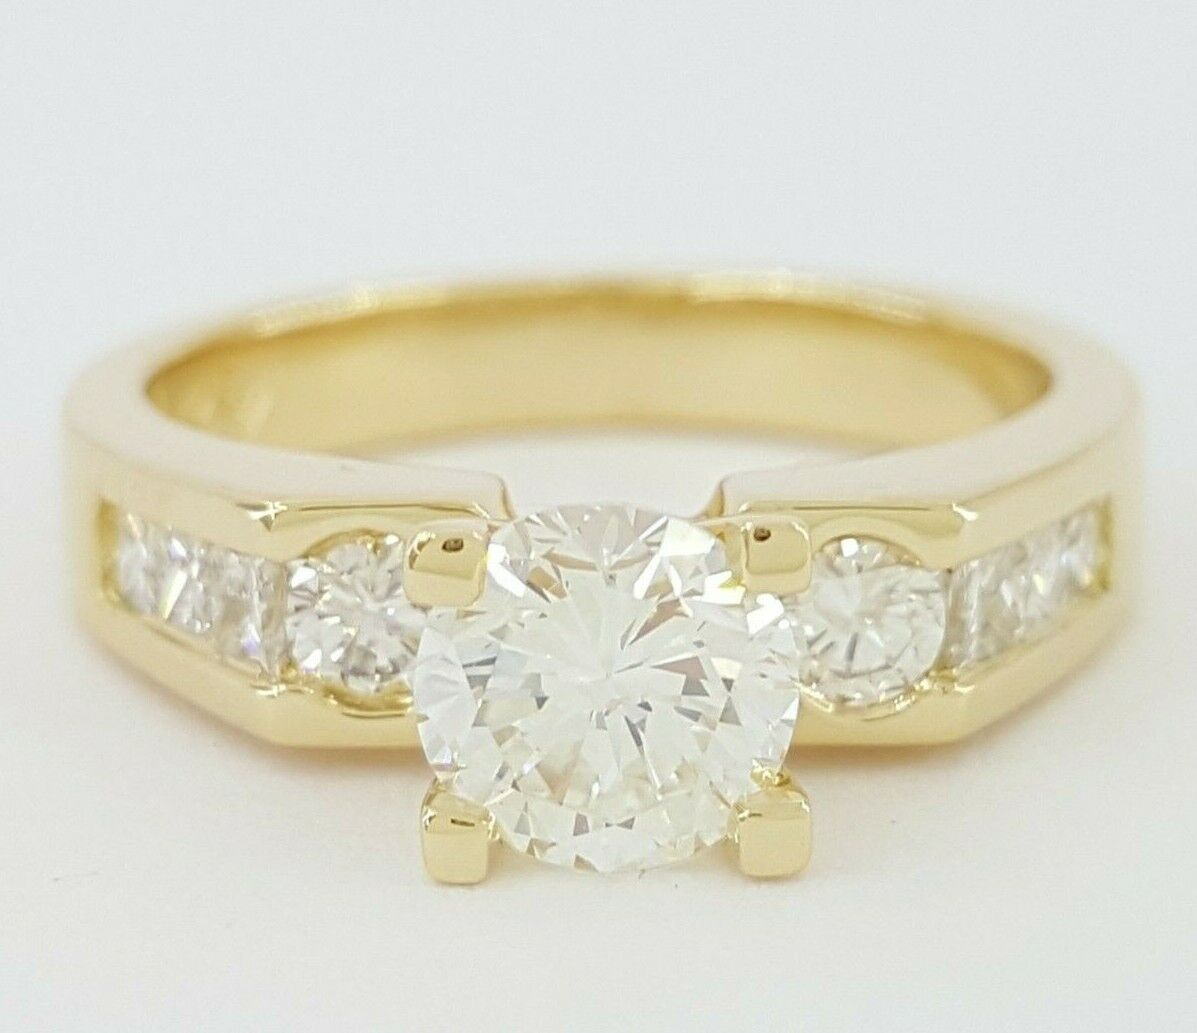 1.28 ct 18K Yellow Gold Round Brilliant Cut Diamond Engagement Ring GIA I / SI2